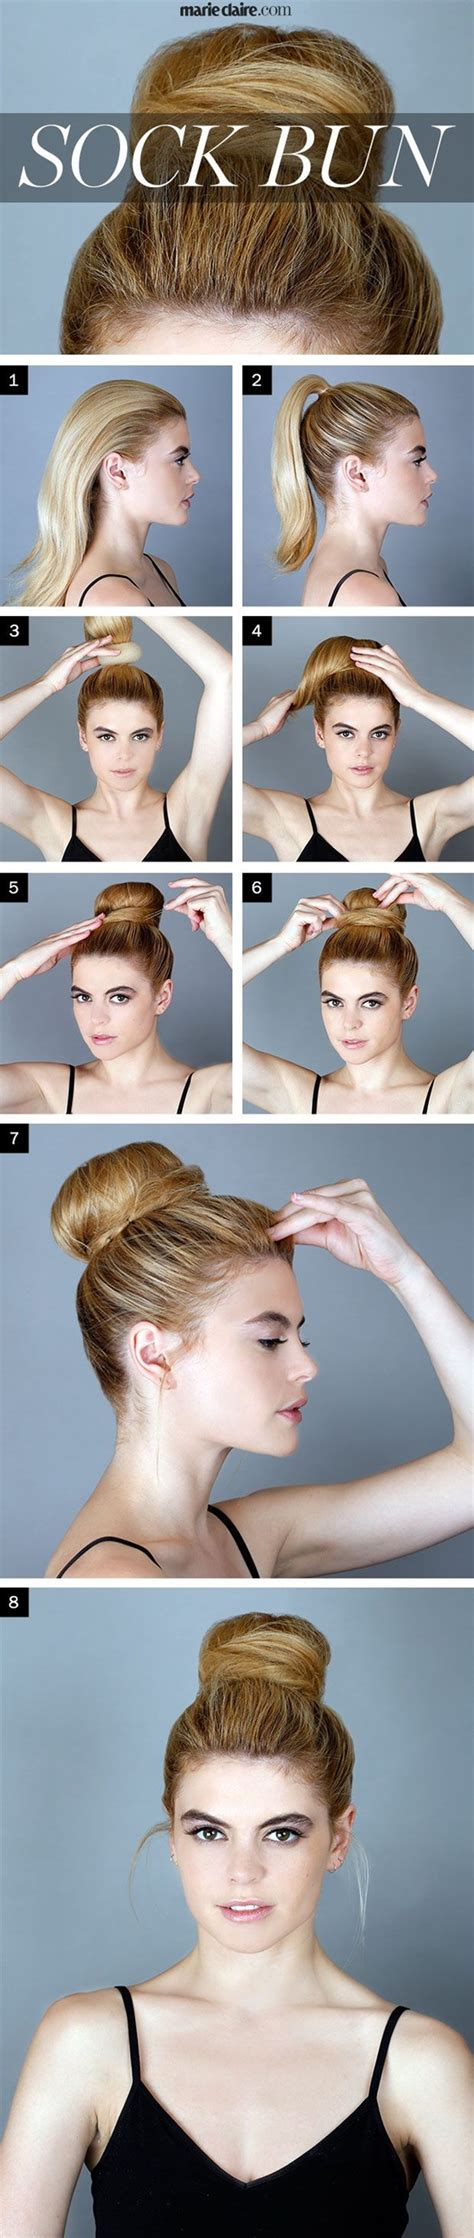 different ways to use donut bun how to make a sock bun 20 different styles